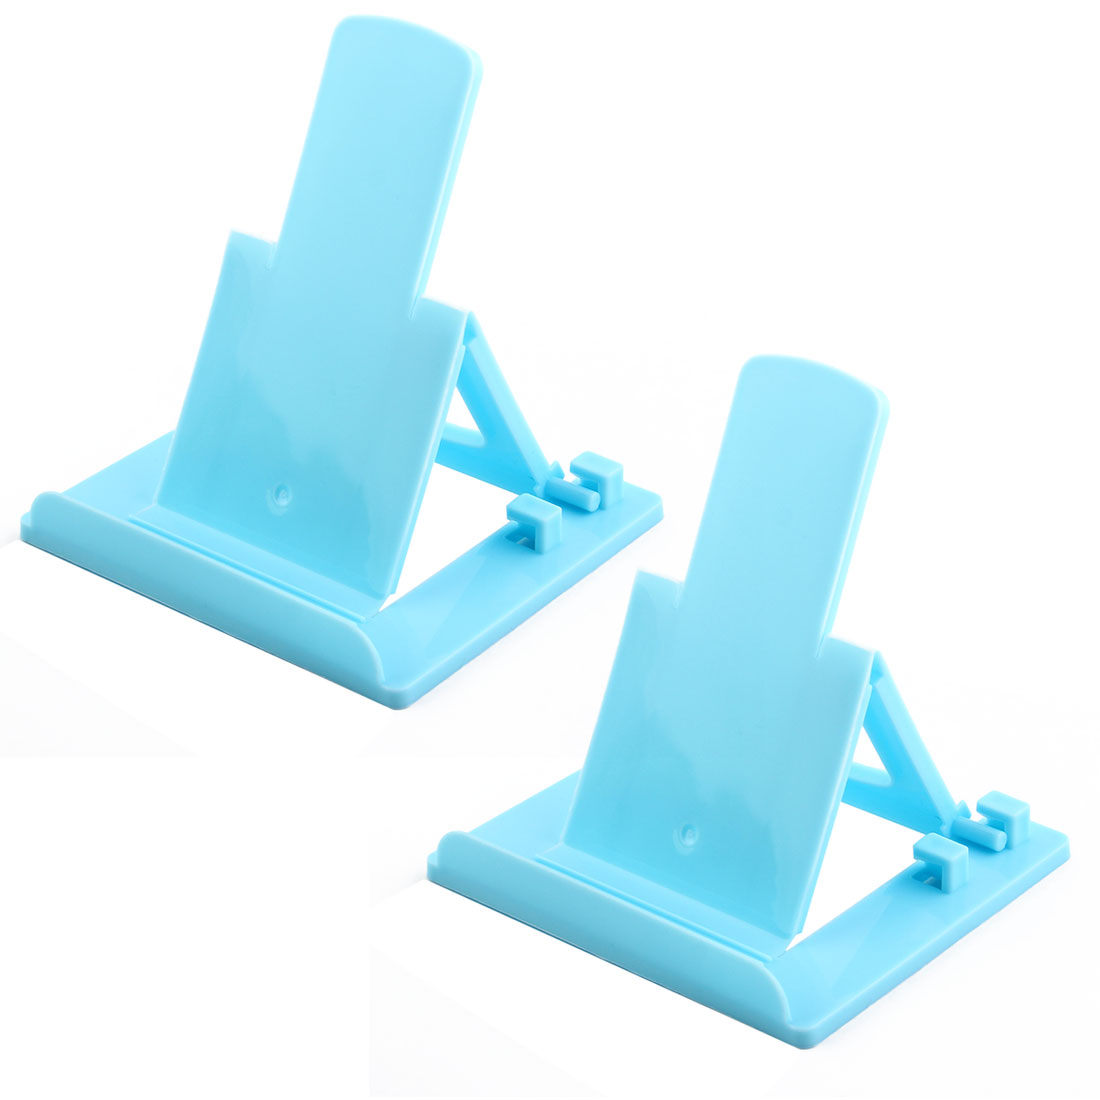 Universal Adjustable Phone Stand Holder Cradle Sky Blue 2pcs for Mp4 Mobile Phone